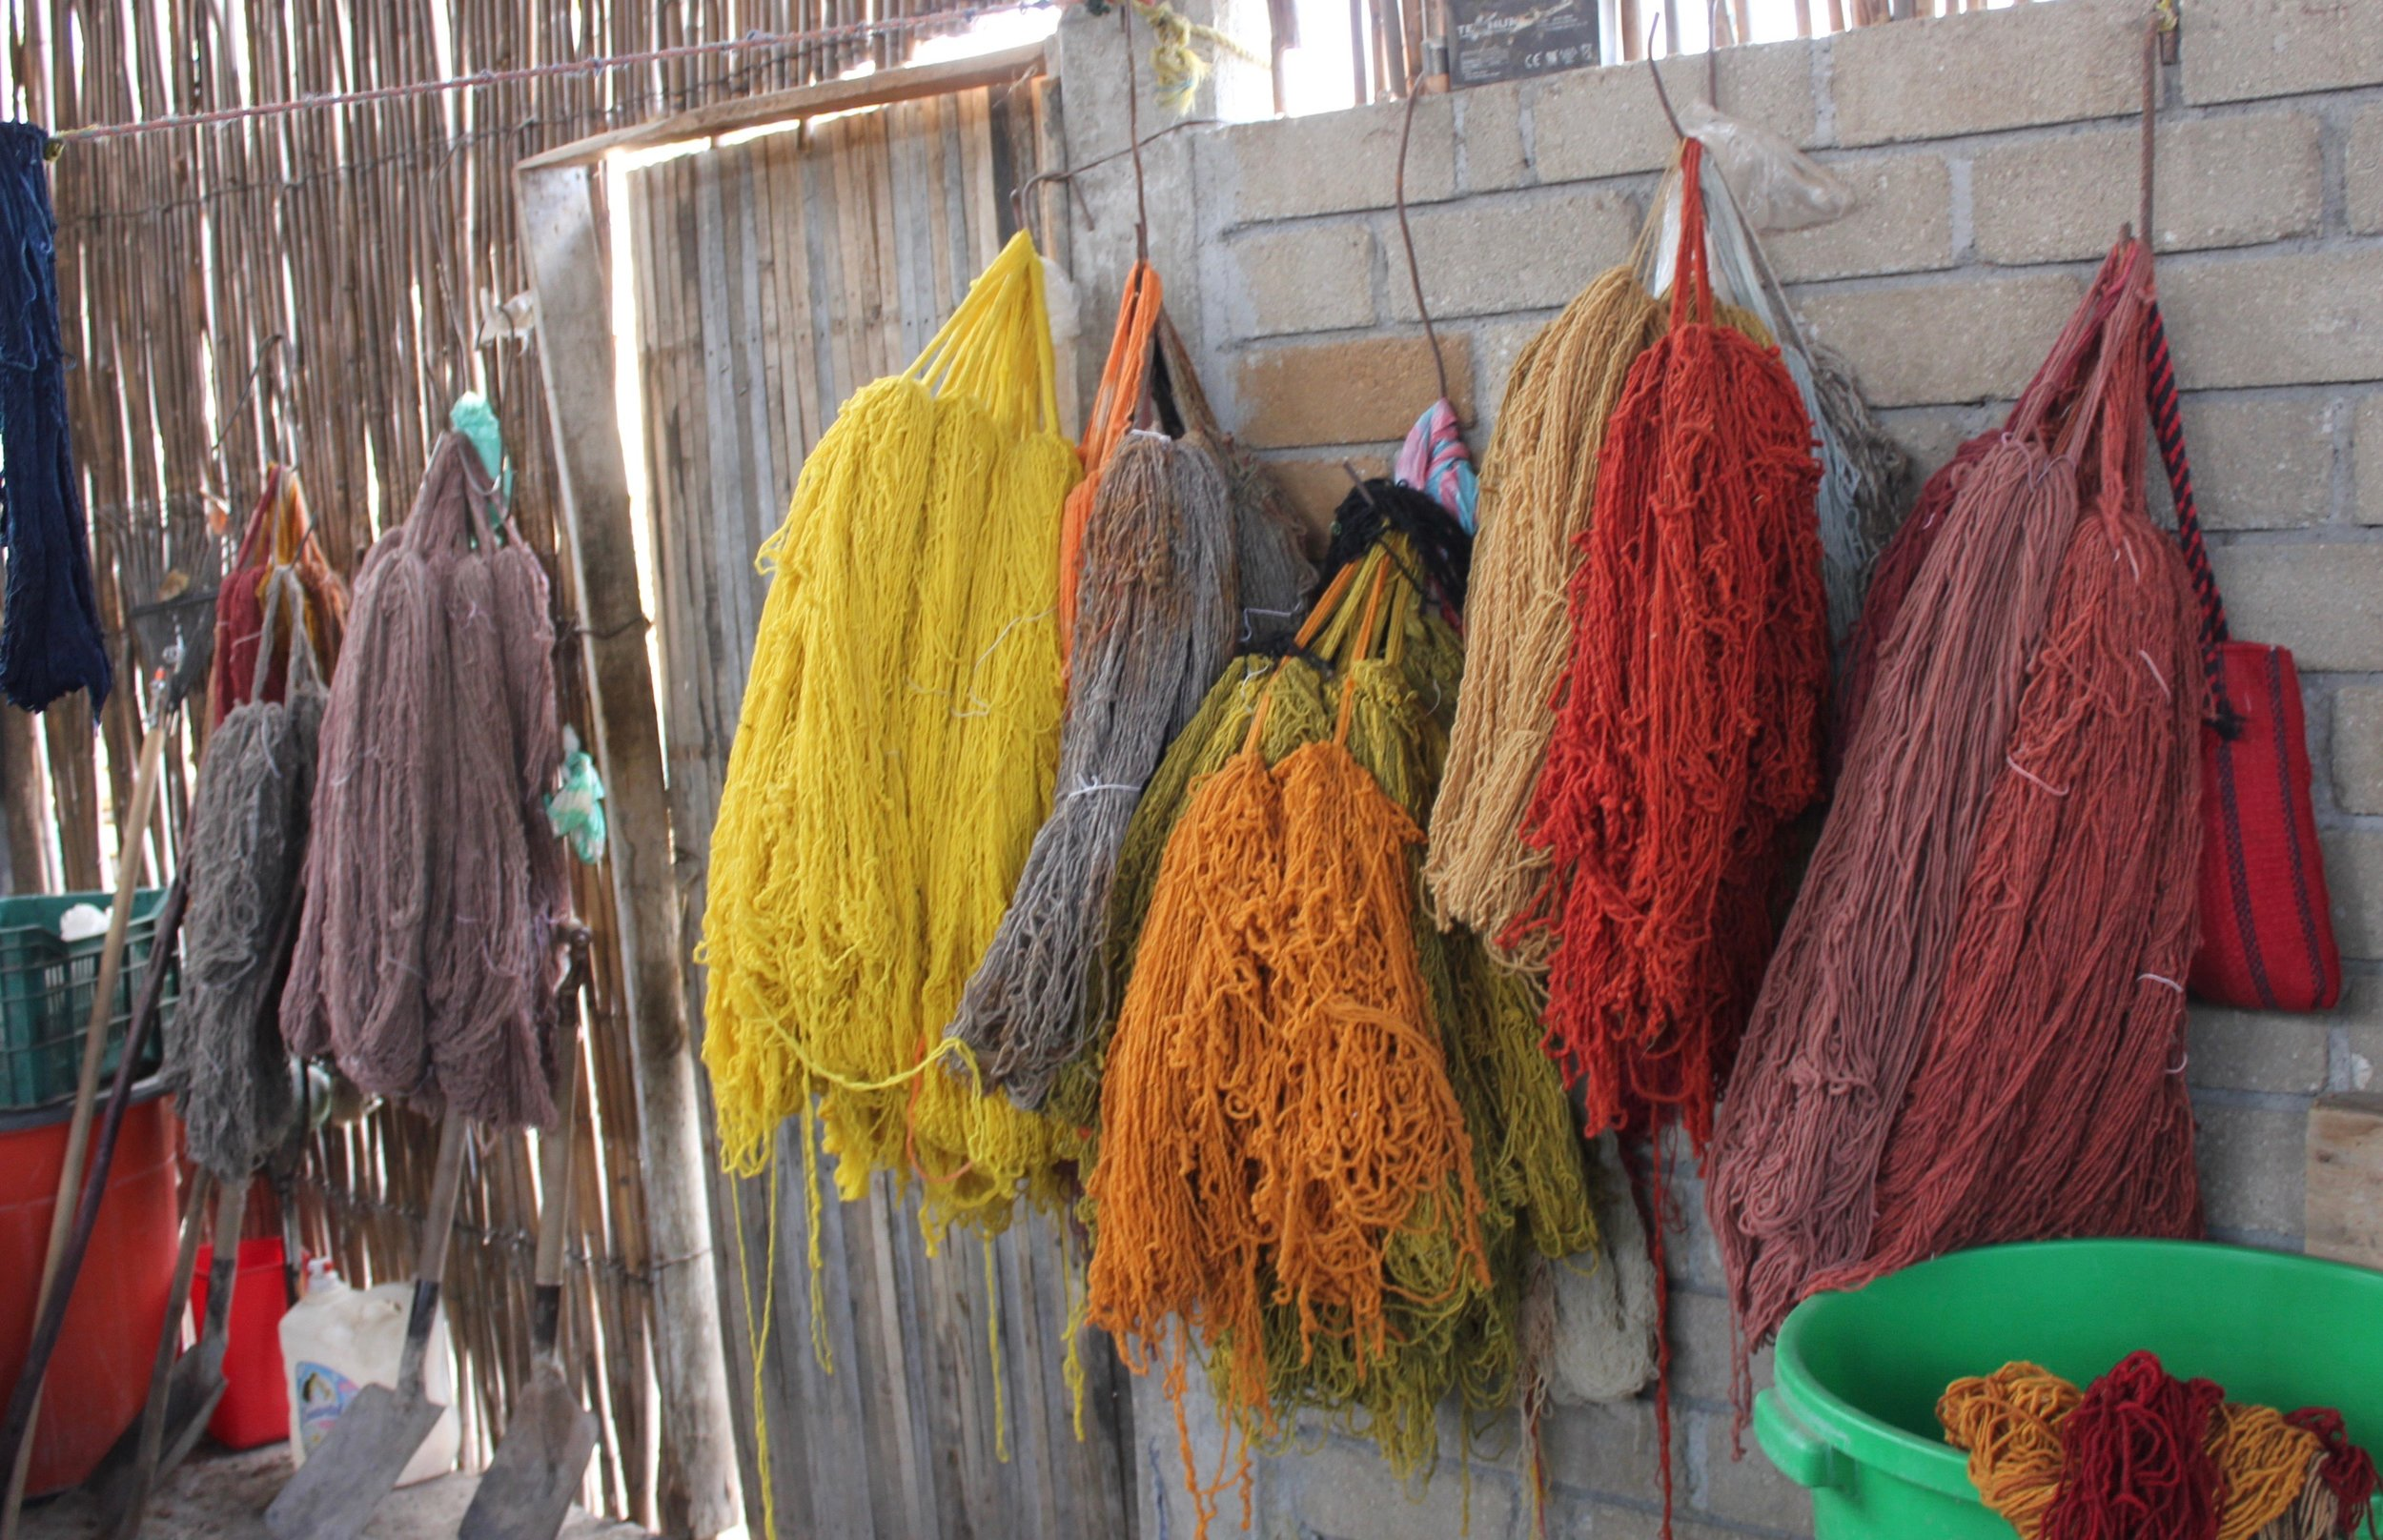 Yarns curing at the weaving workshop of Rosario Martinez Vasquez and Ernesto Maldonado Gonzalez